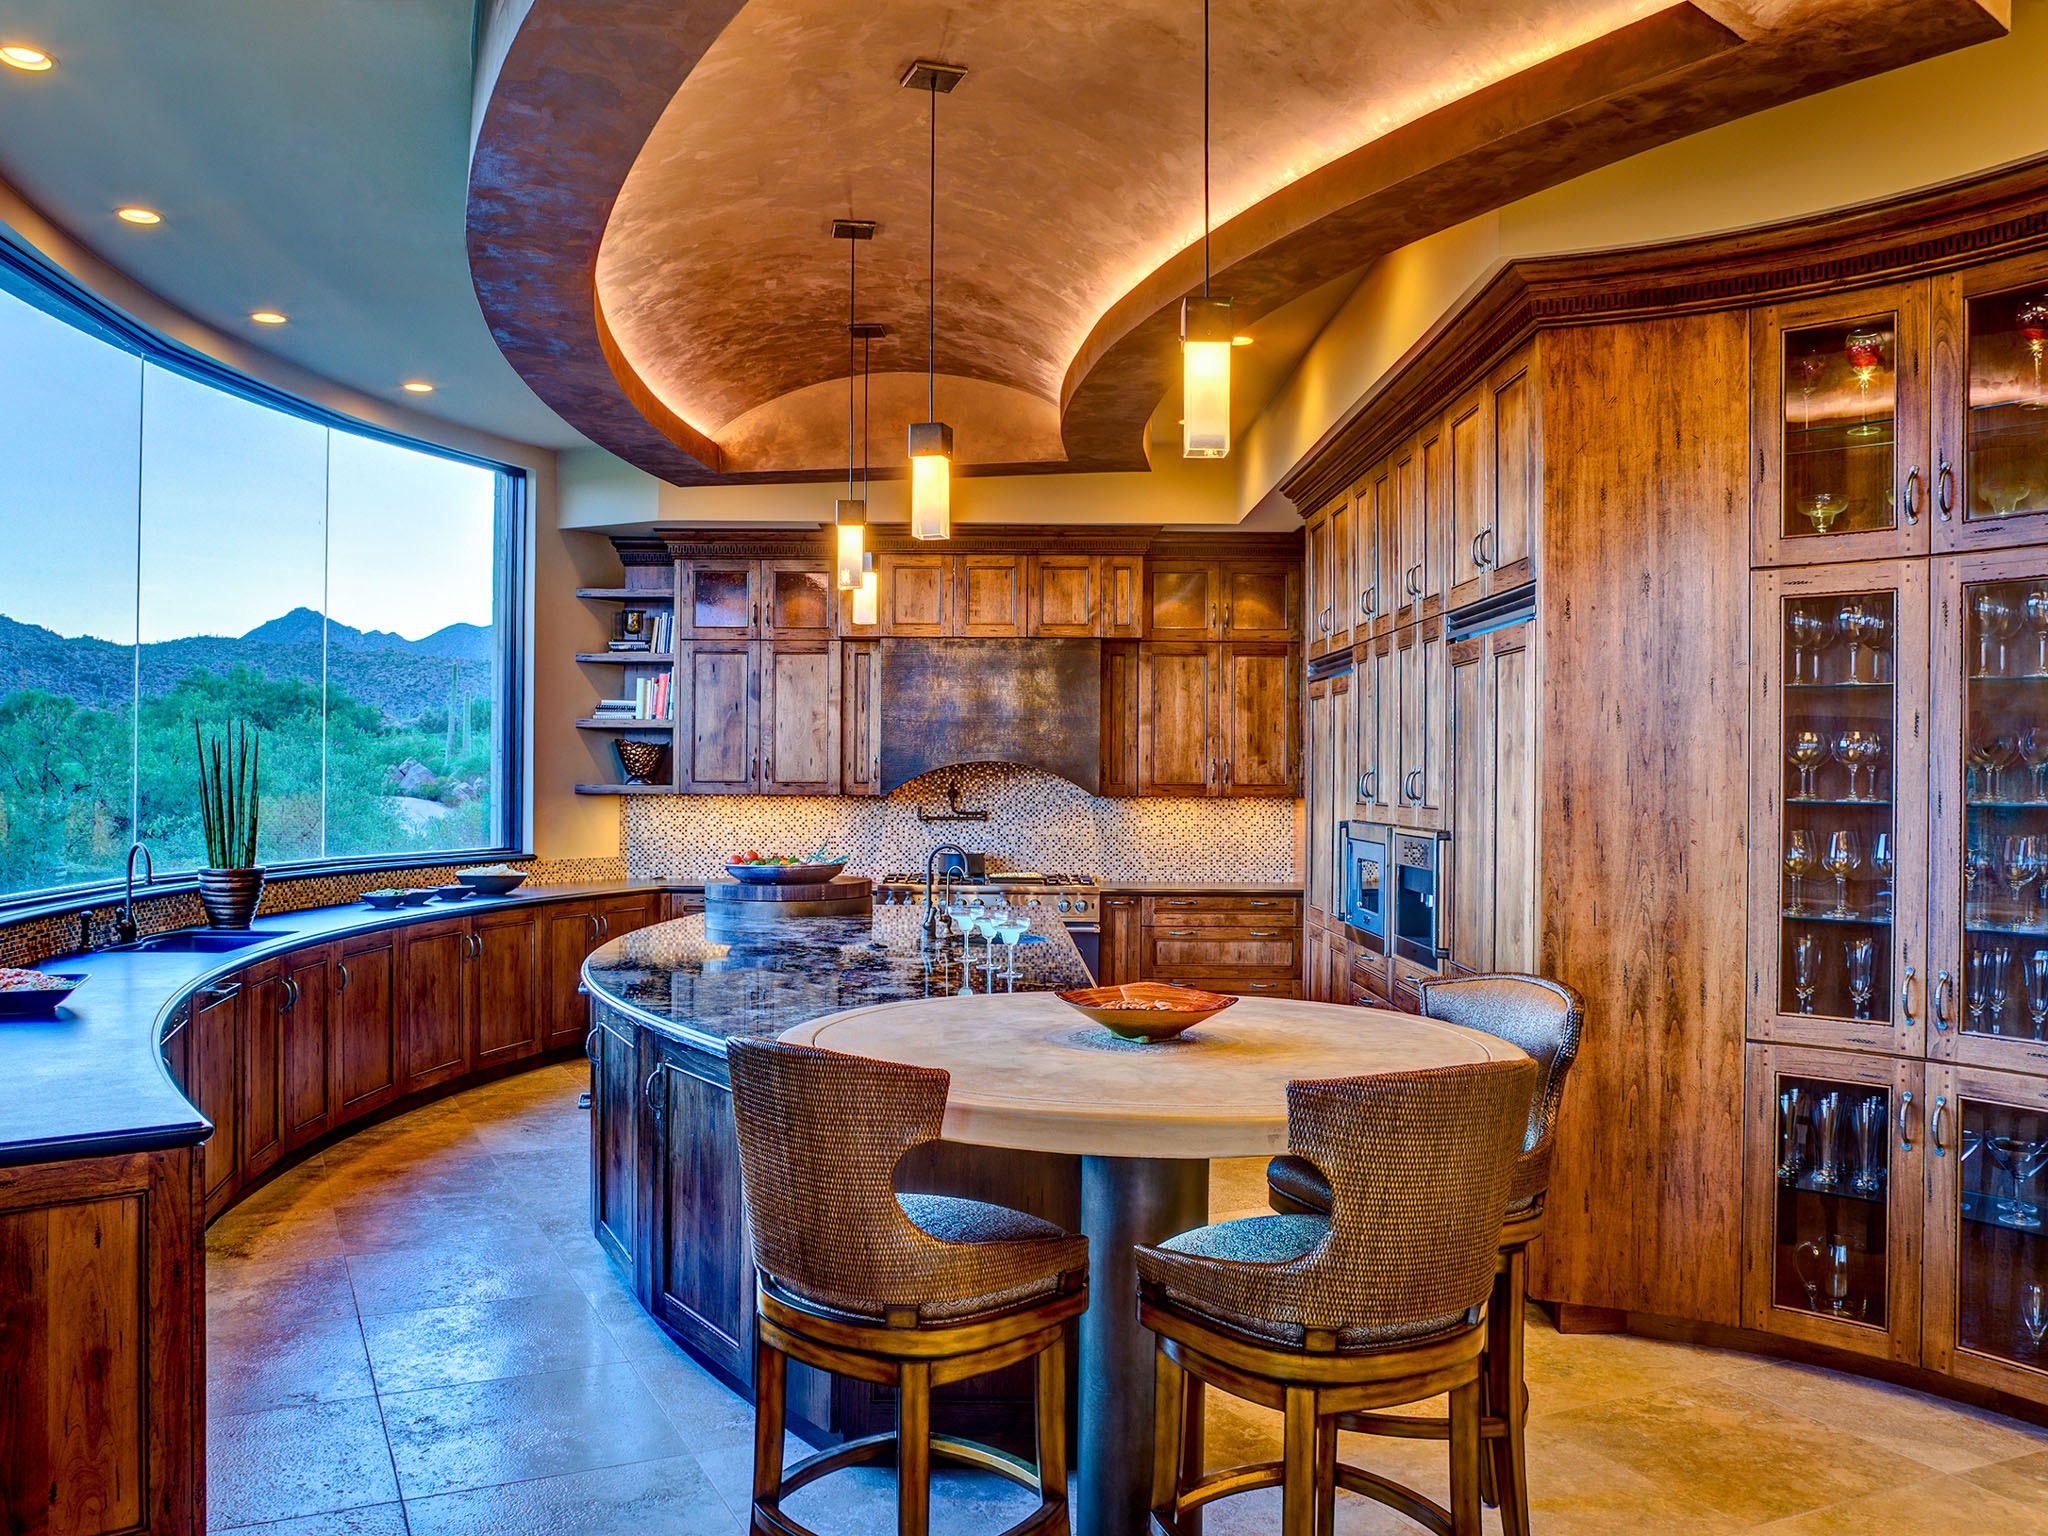 Classic Southwestern Dining Area And Kitchen Curved Island (Image 1 of 11)